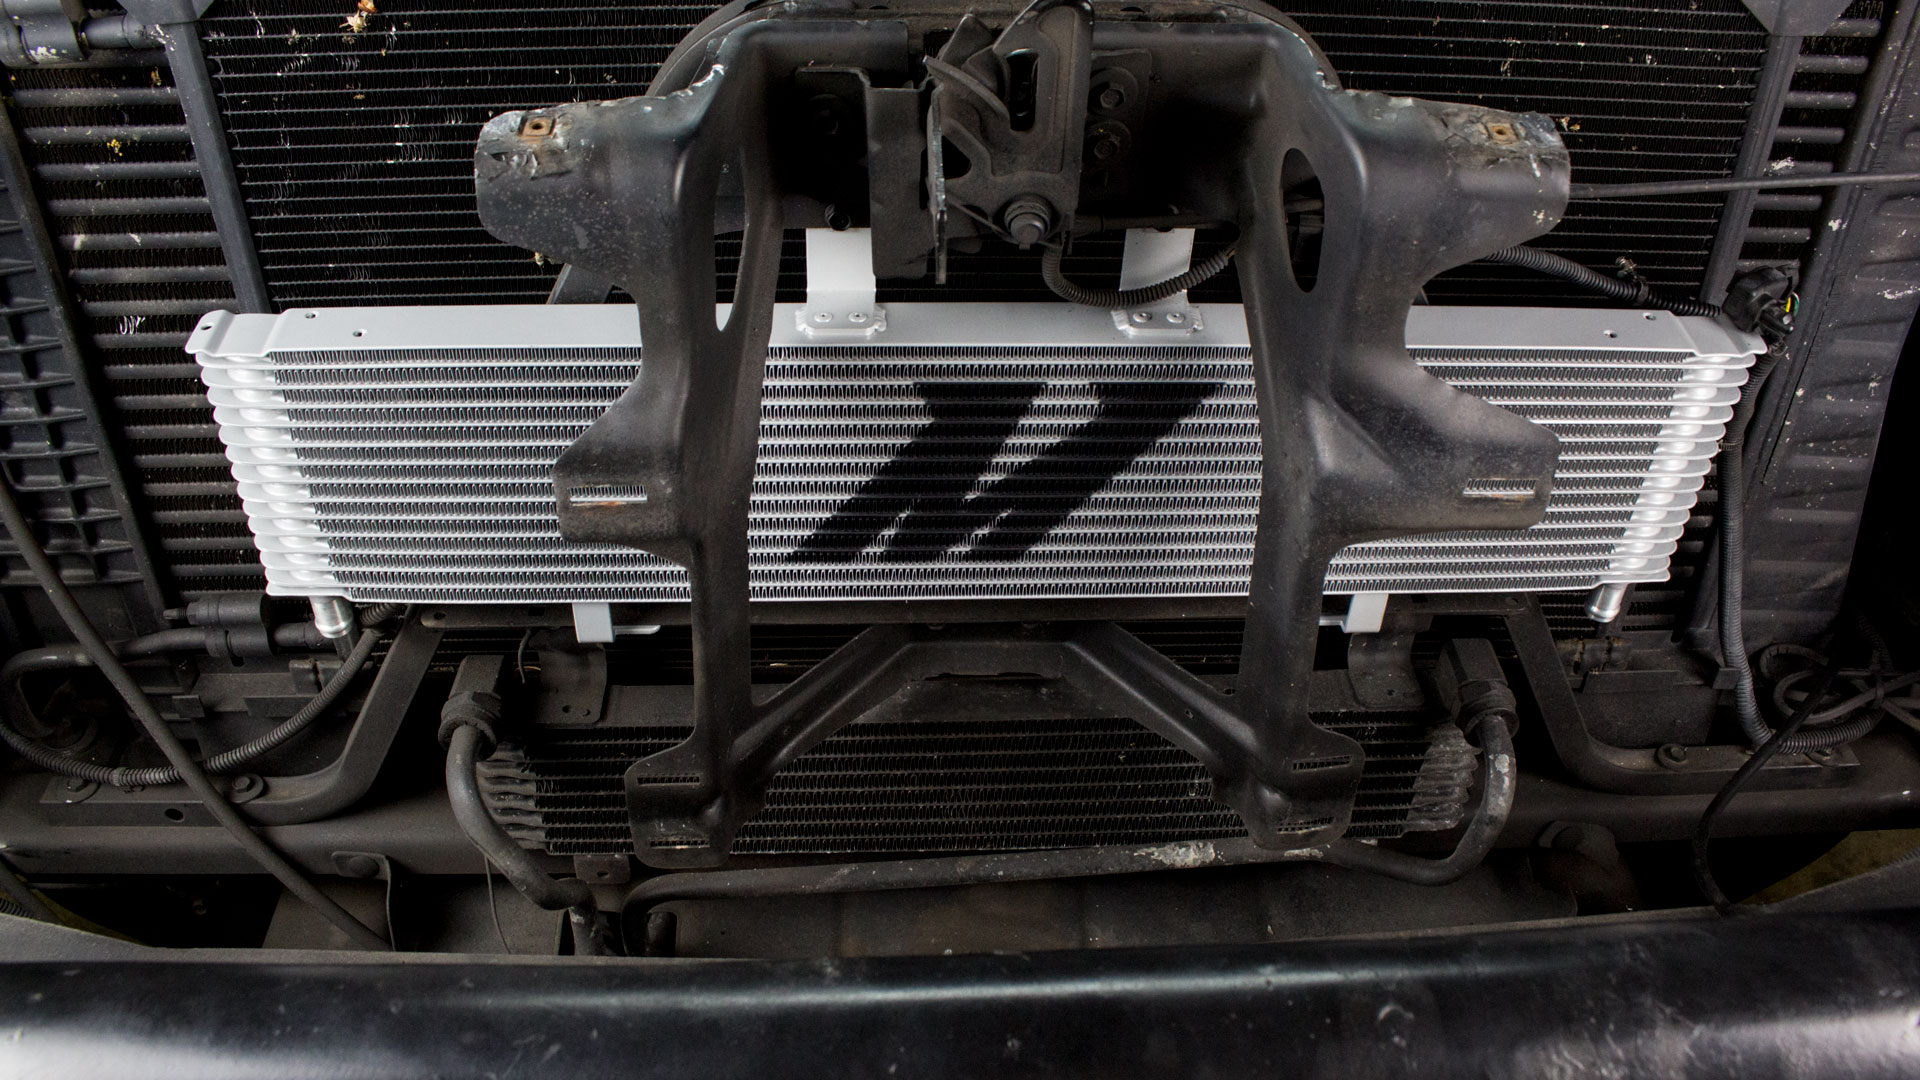 Allison tranny temp very low - Chevy and GMC Duramax sel Forum on 2002 chevy silverado transmission diagram, duramax oil cooler delete, allison 2000 parts diagram,